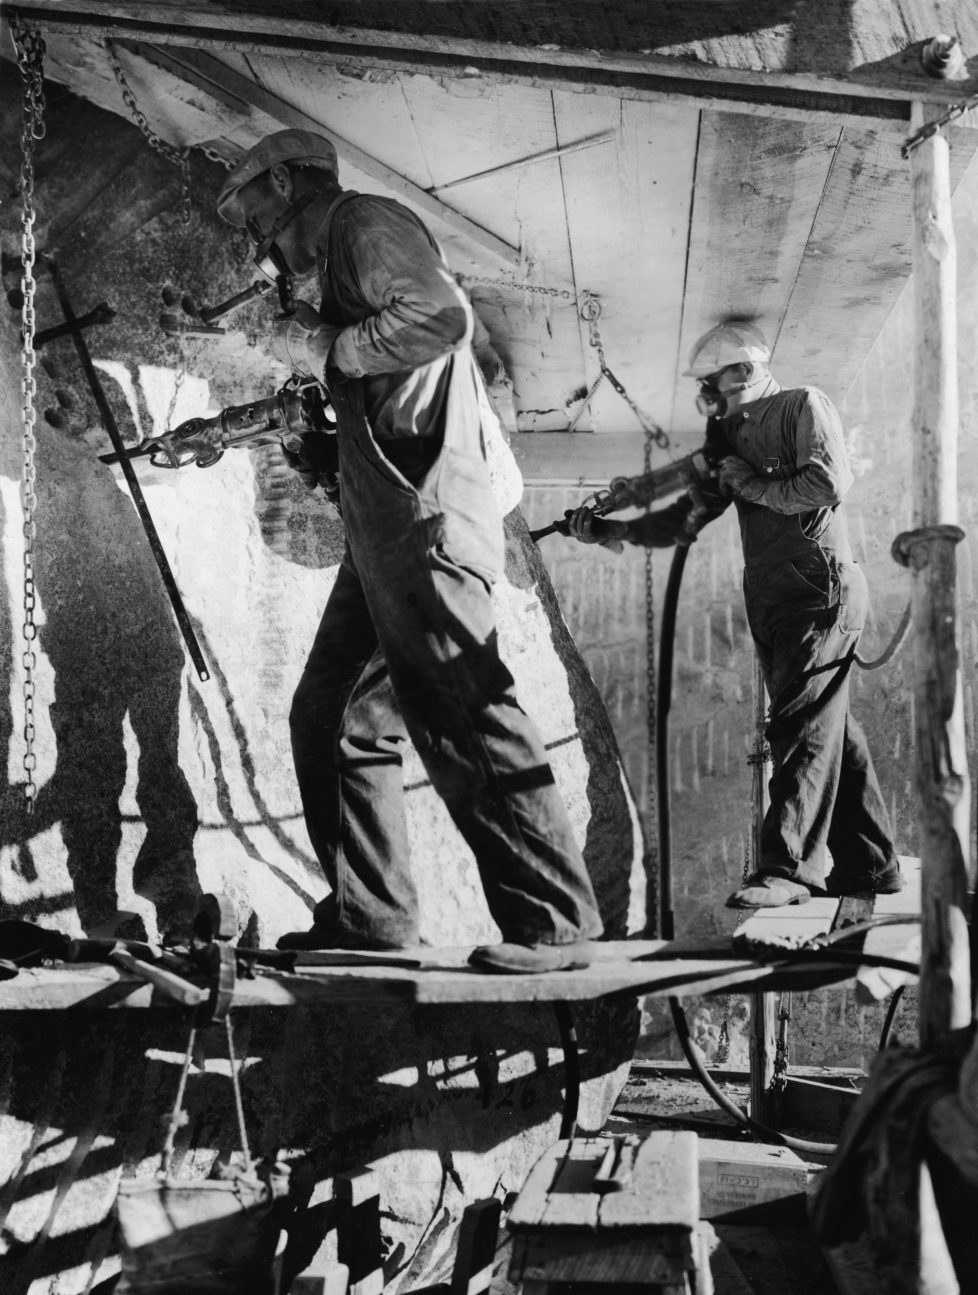 Stone workers carve the eyes of President Theodore Roosevelt with air hammers during the construction of the Mount Rushmore National Memorial in the Black Hills, Keystone, South Dakota, late 1930s to early 1940s. (Photo by Frederic Lewis/Getty Images)